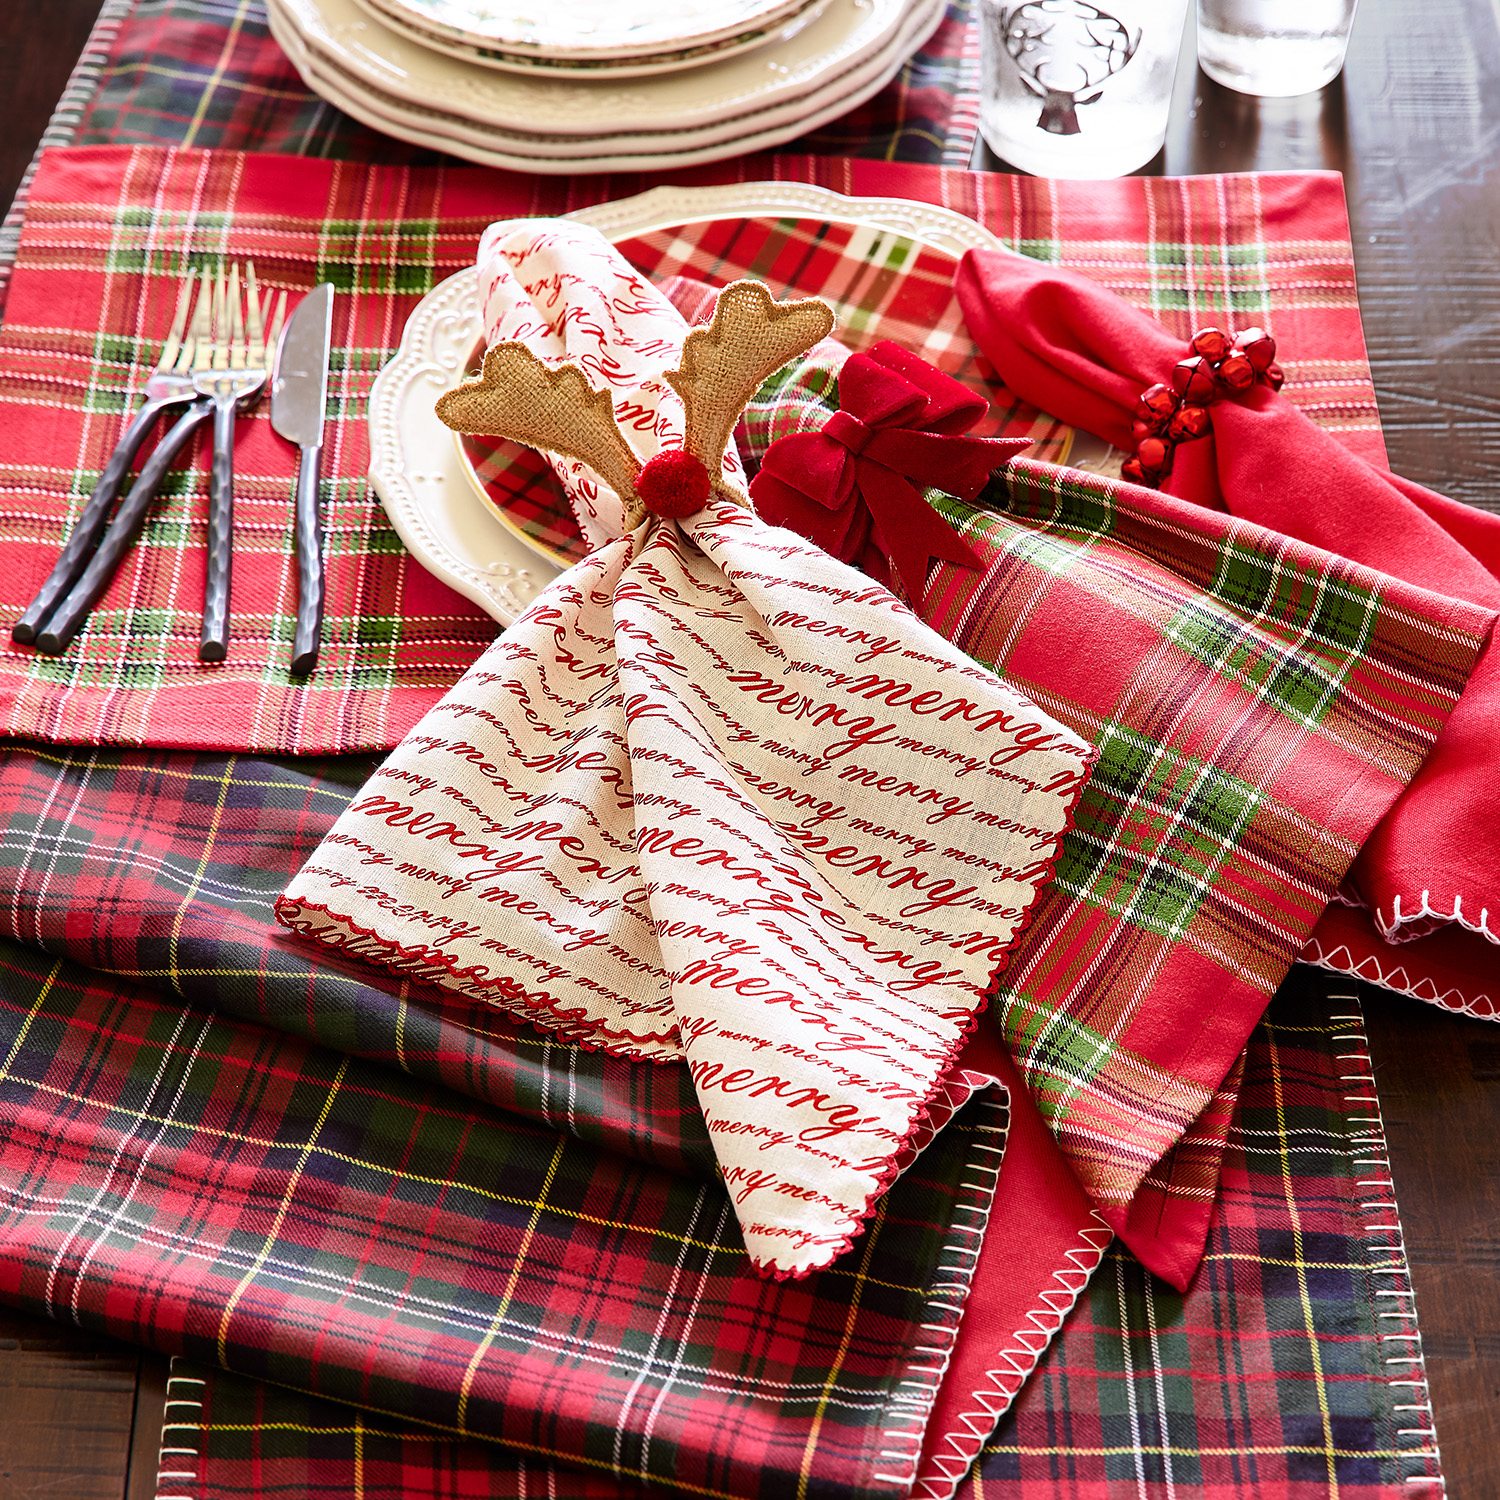 Woven Plaid Christmas Placemat